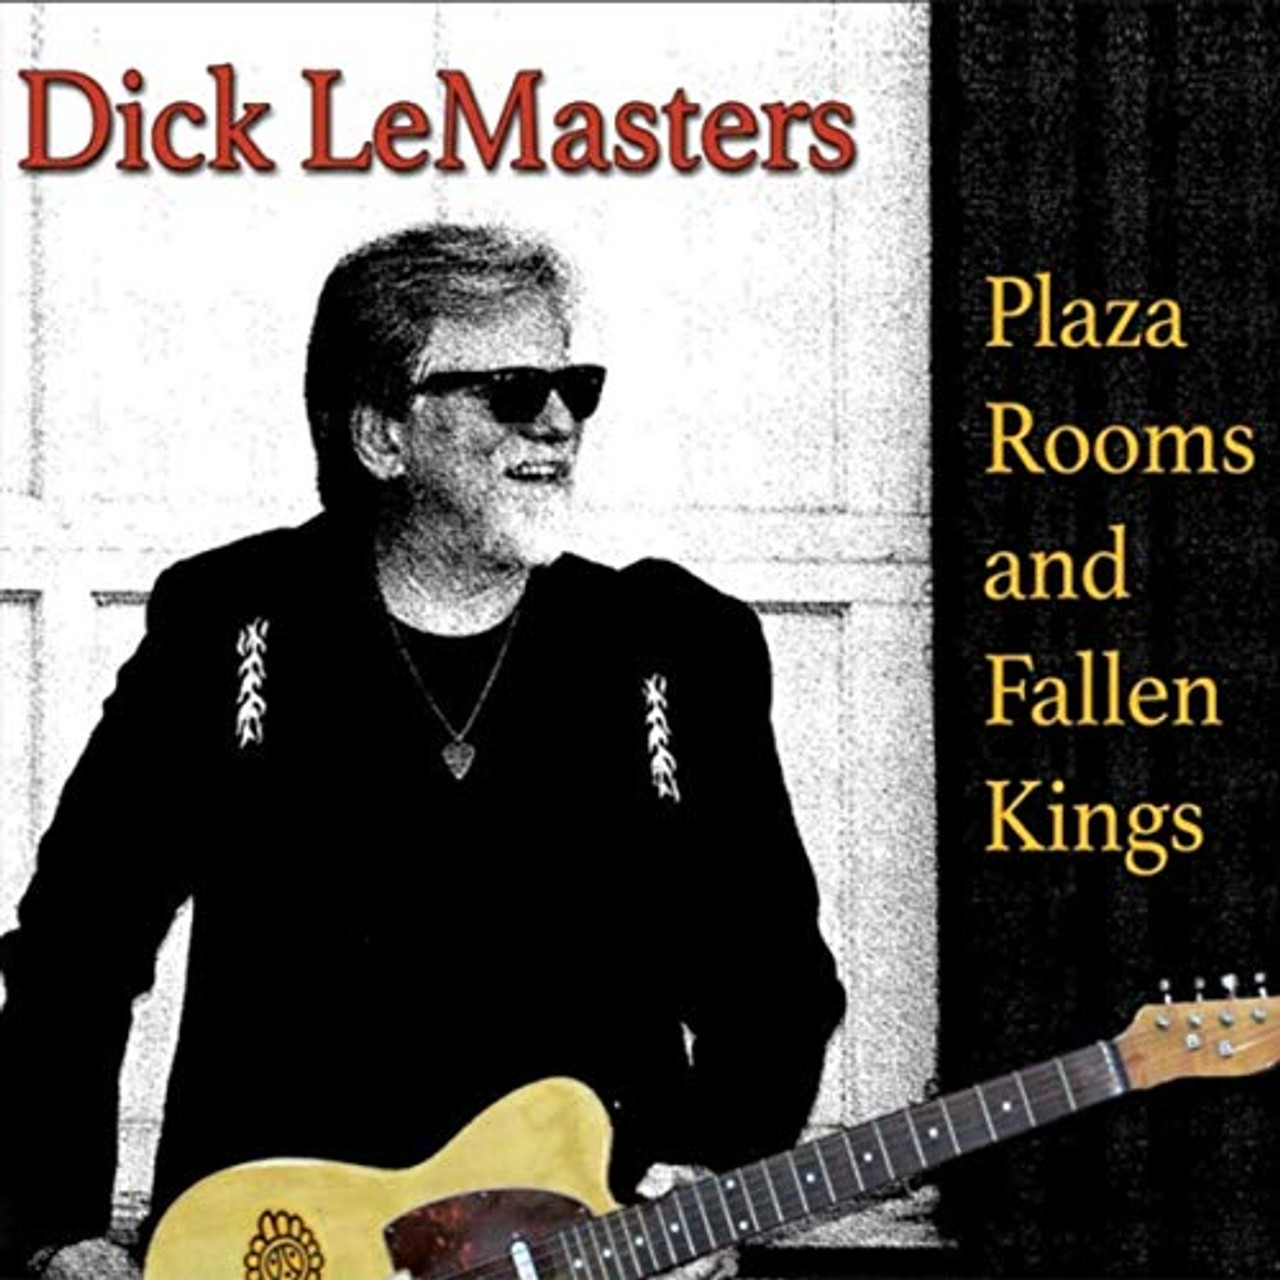 Dick LeMasters - Plaza Rooms and Fallen Kings - CD